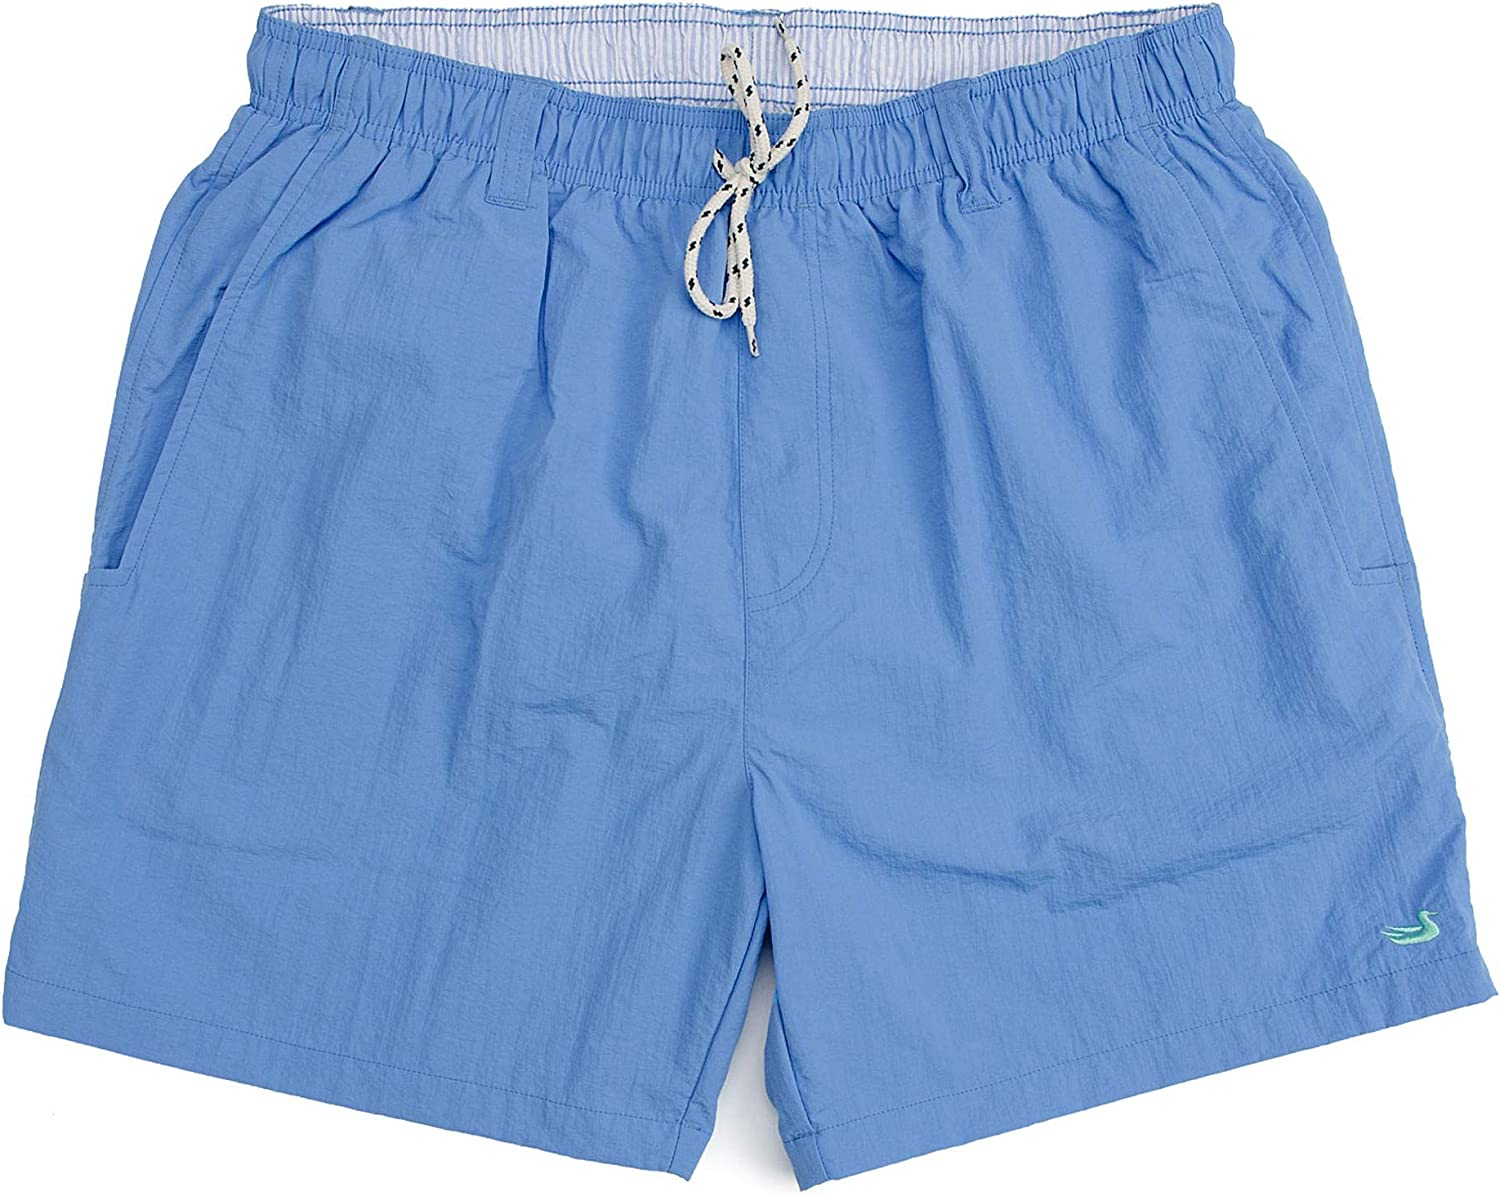 Southern Marsh Men's Dockside Swim Trunk